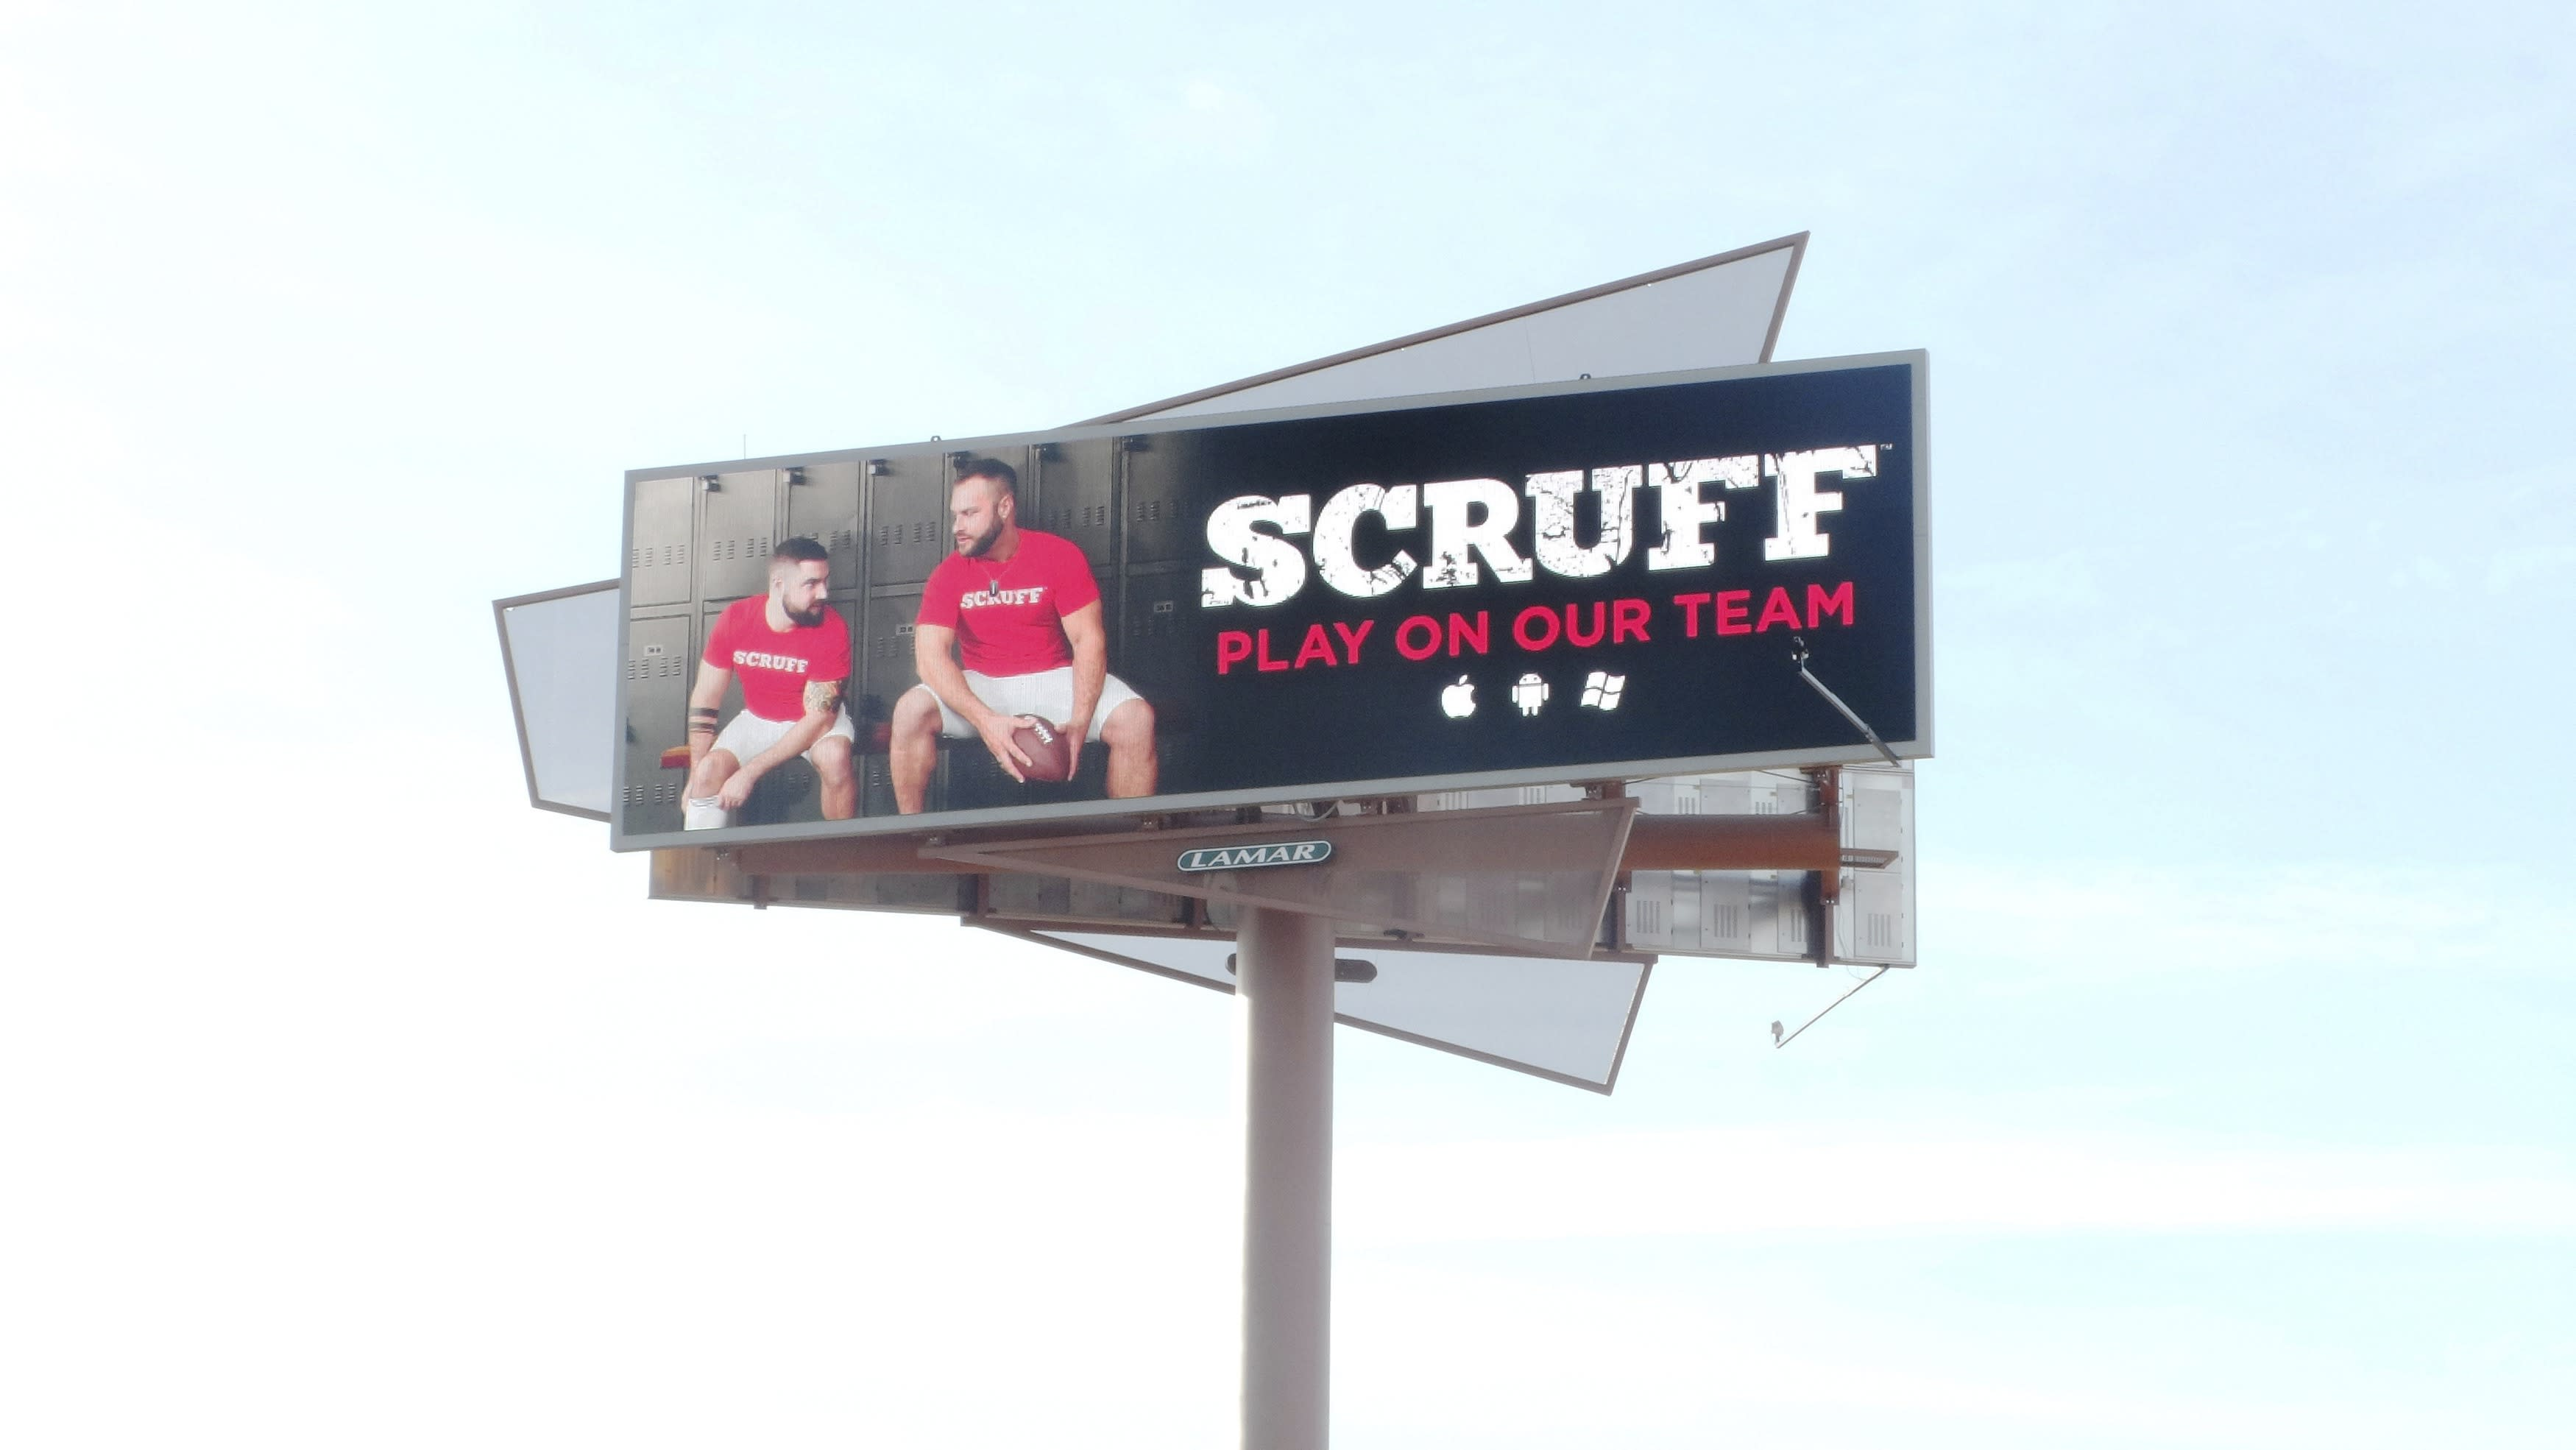 Super Bowl billboard campaign seeks acceptance for gay players